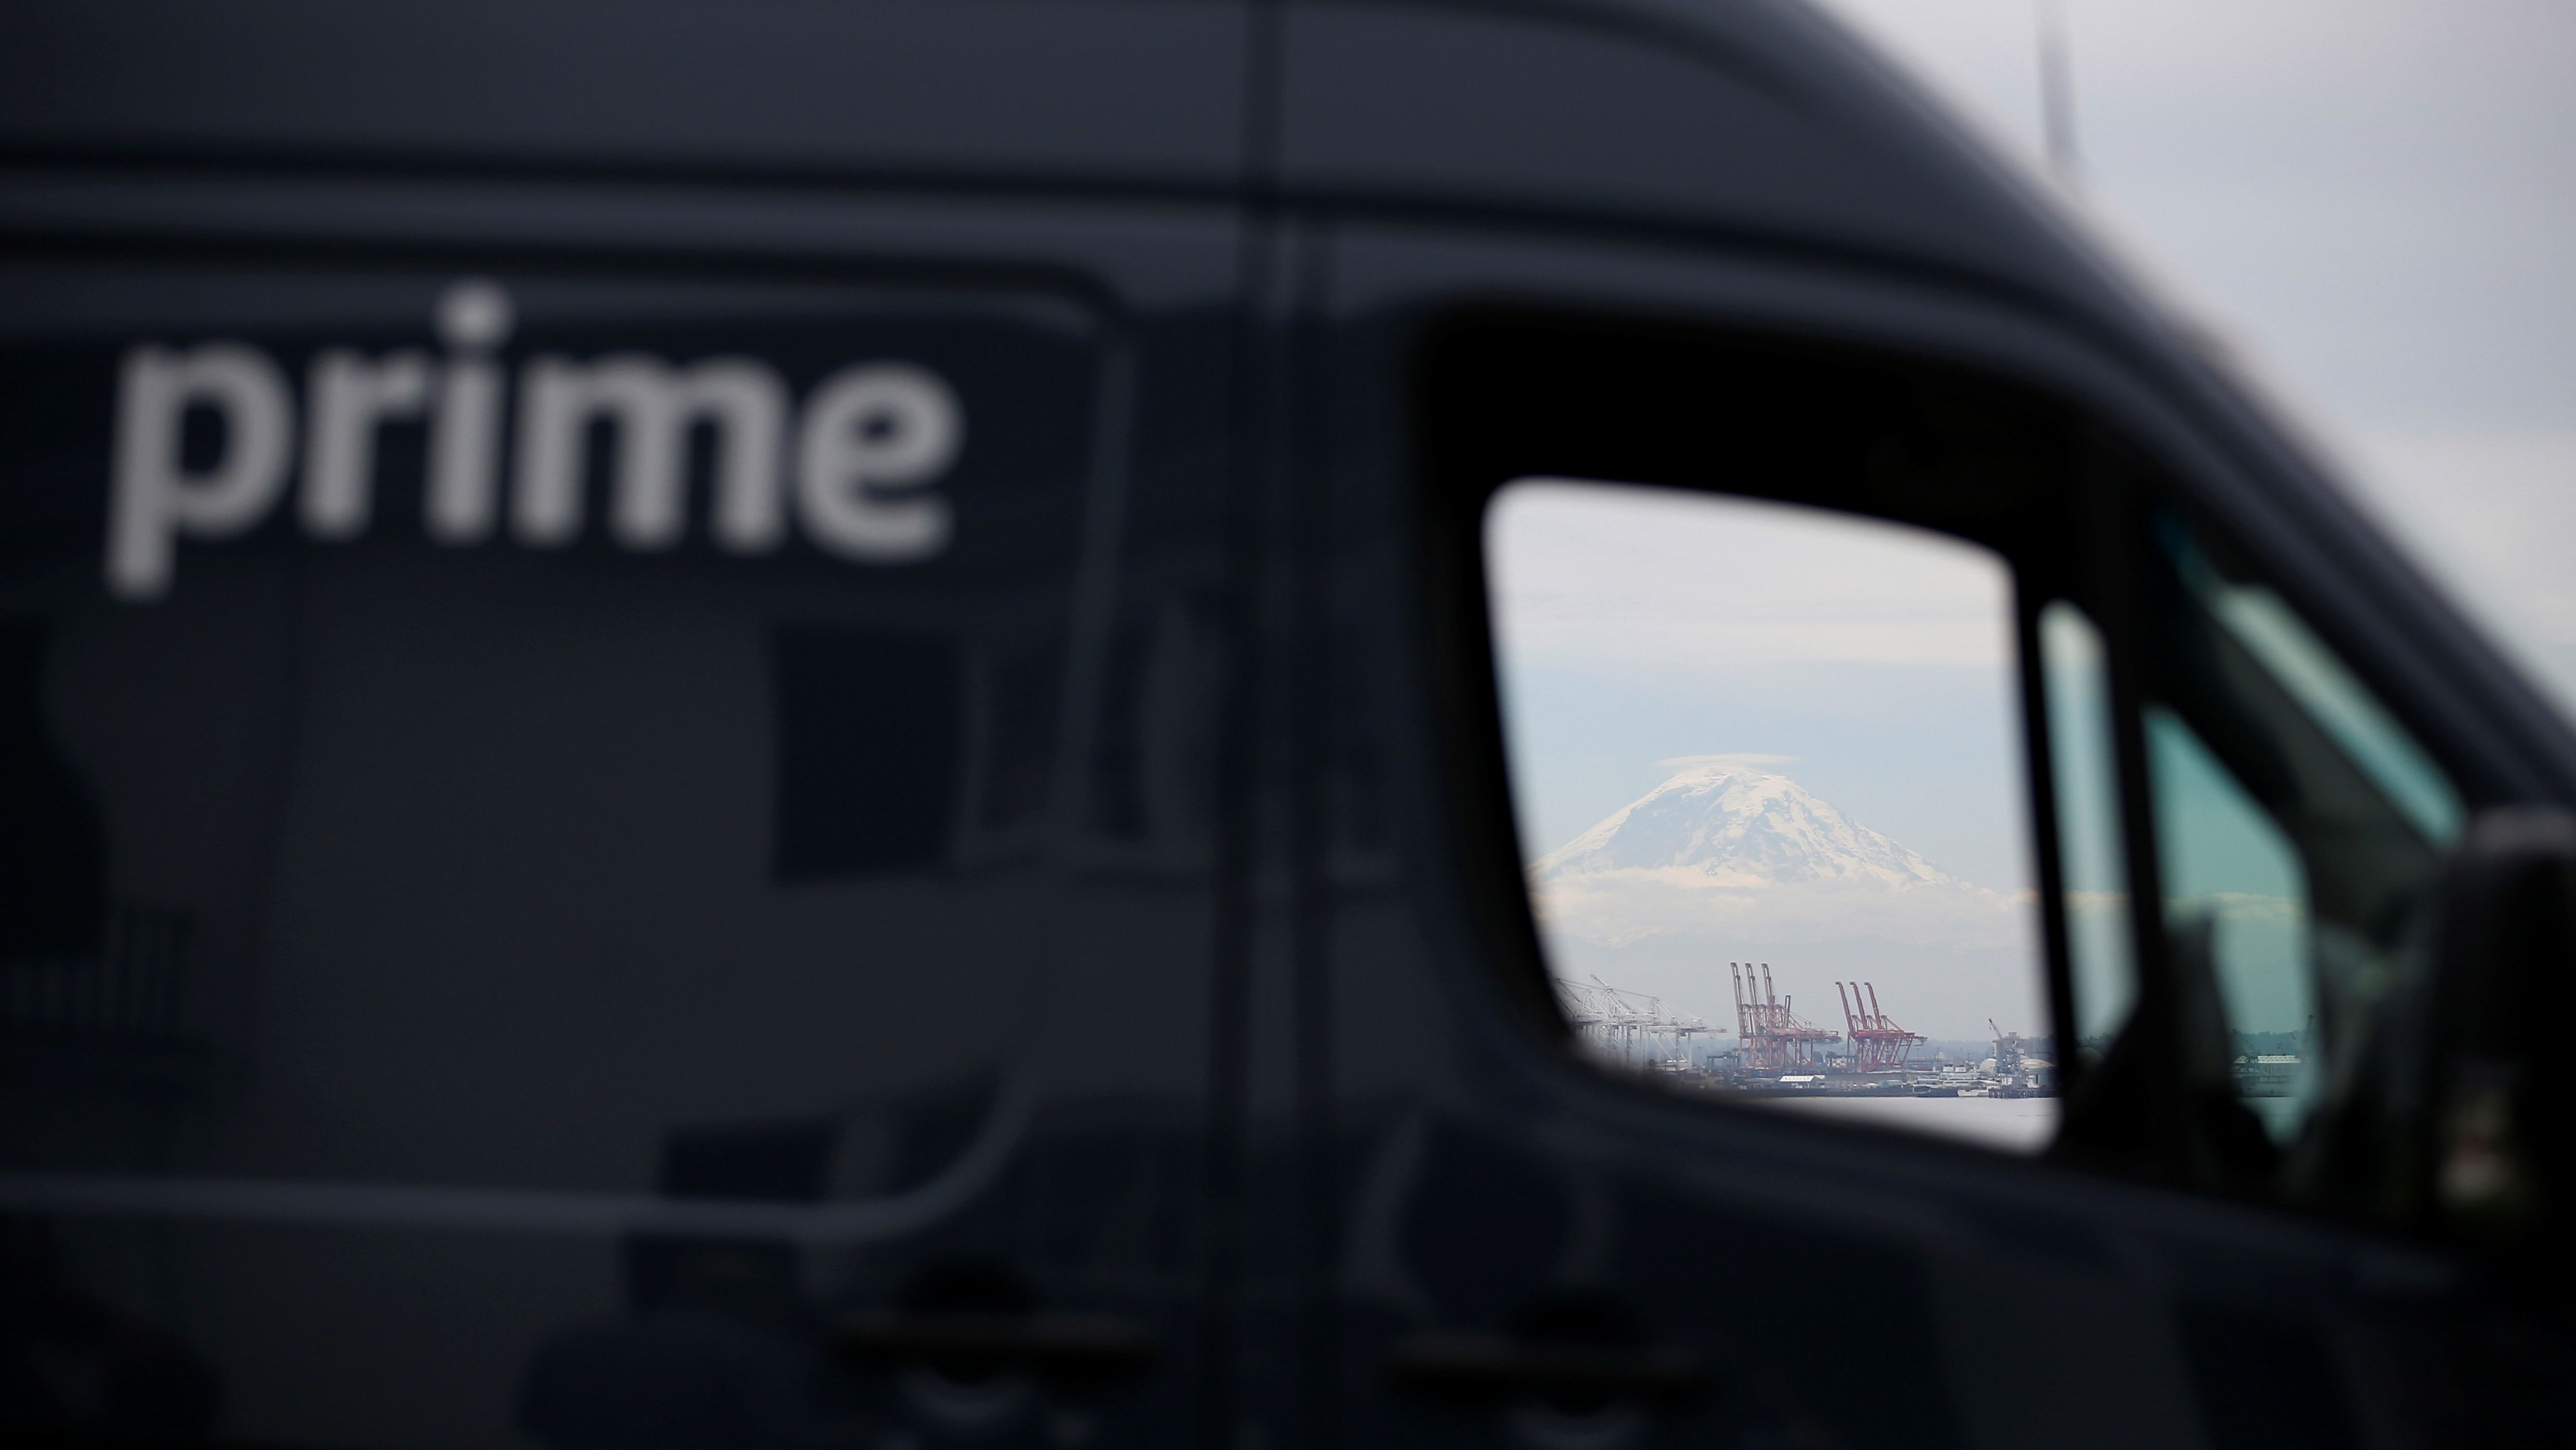 Mt. Rainier can be seen through the window of an Amazon Prime van during a press conference announcing Amazon.com's new program to help entrepreneurs build businesses delivering Amazon packages, including $1 million to fund startup costs for military veterans, in Seattle, Washington, U.S., June 27, 2018.  REUTERS/Lindsey Wasson - RC1FDFB50AC0